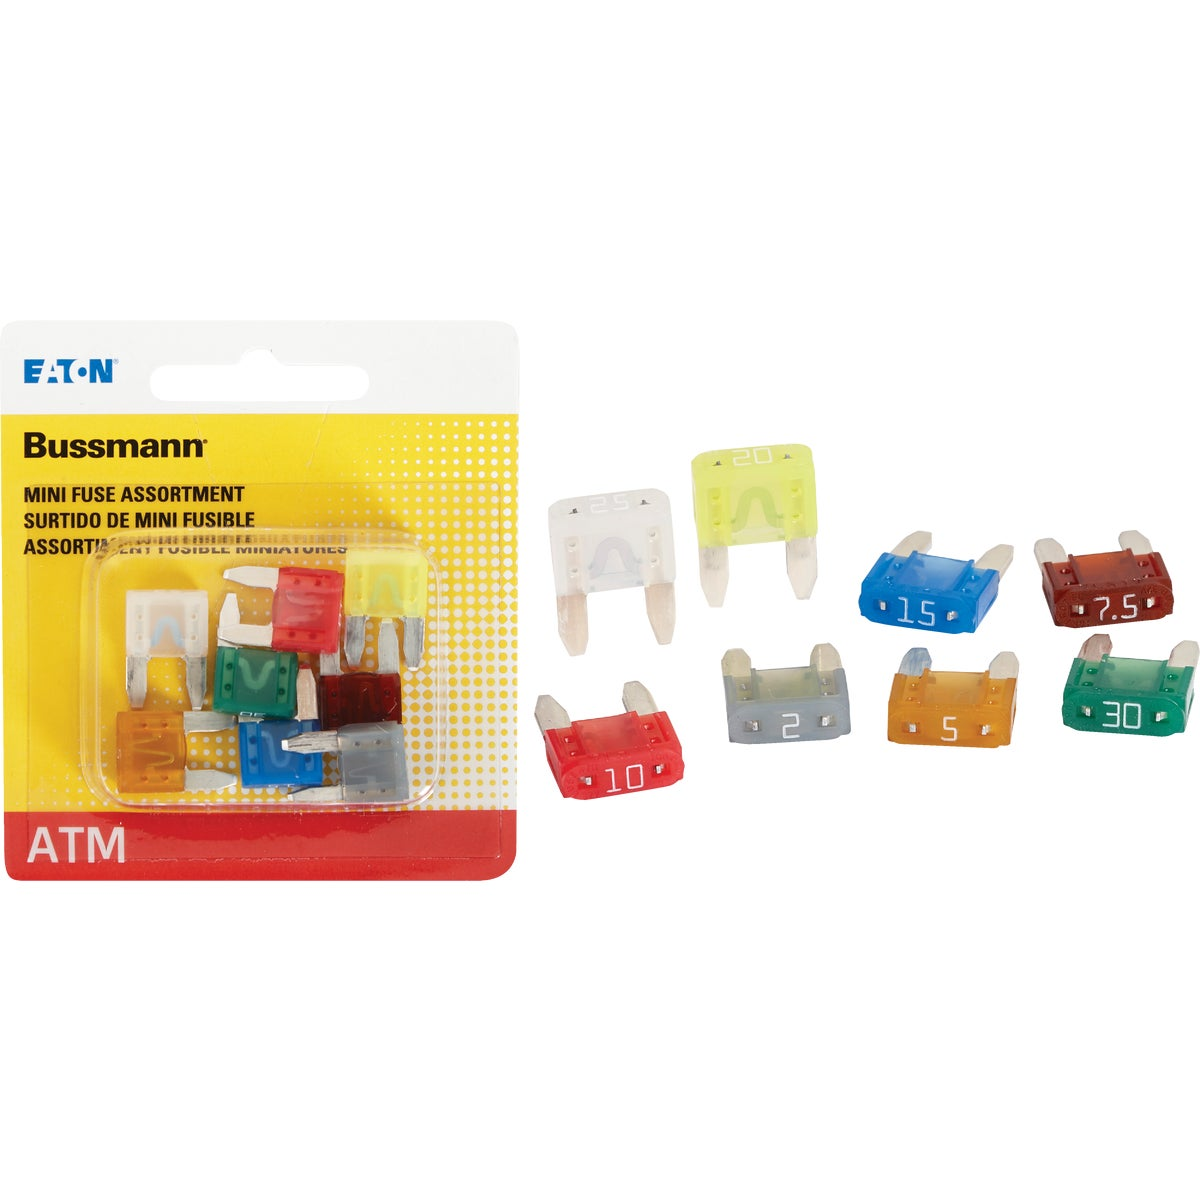 8PK ATM FUSE ASSORTMENT - BP/ATM-A8-RP by Bussmann Cooper